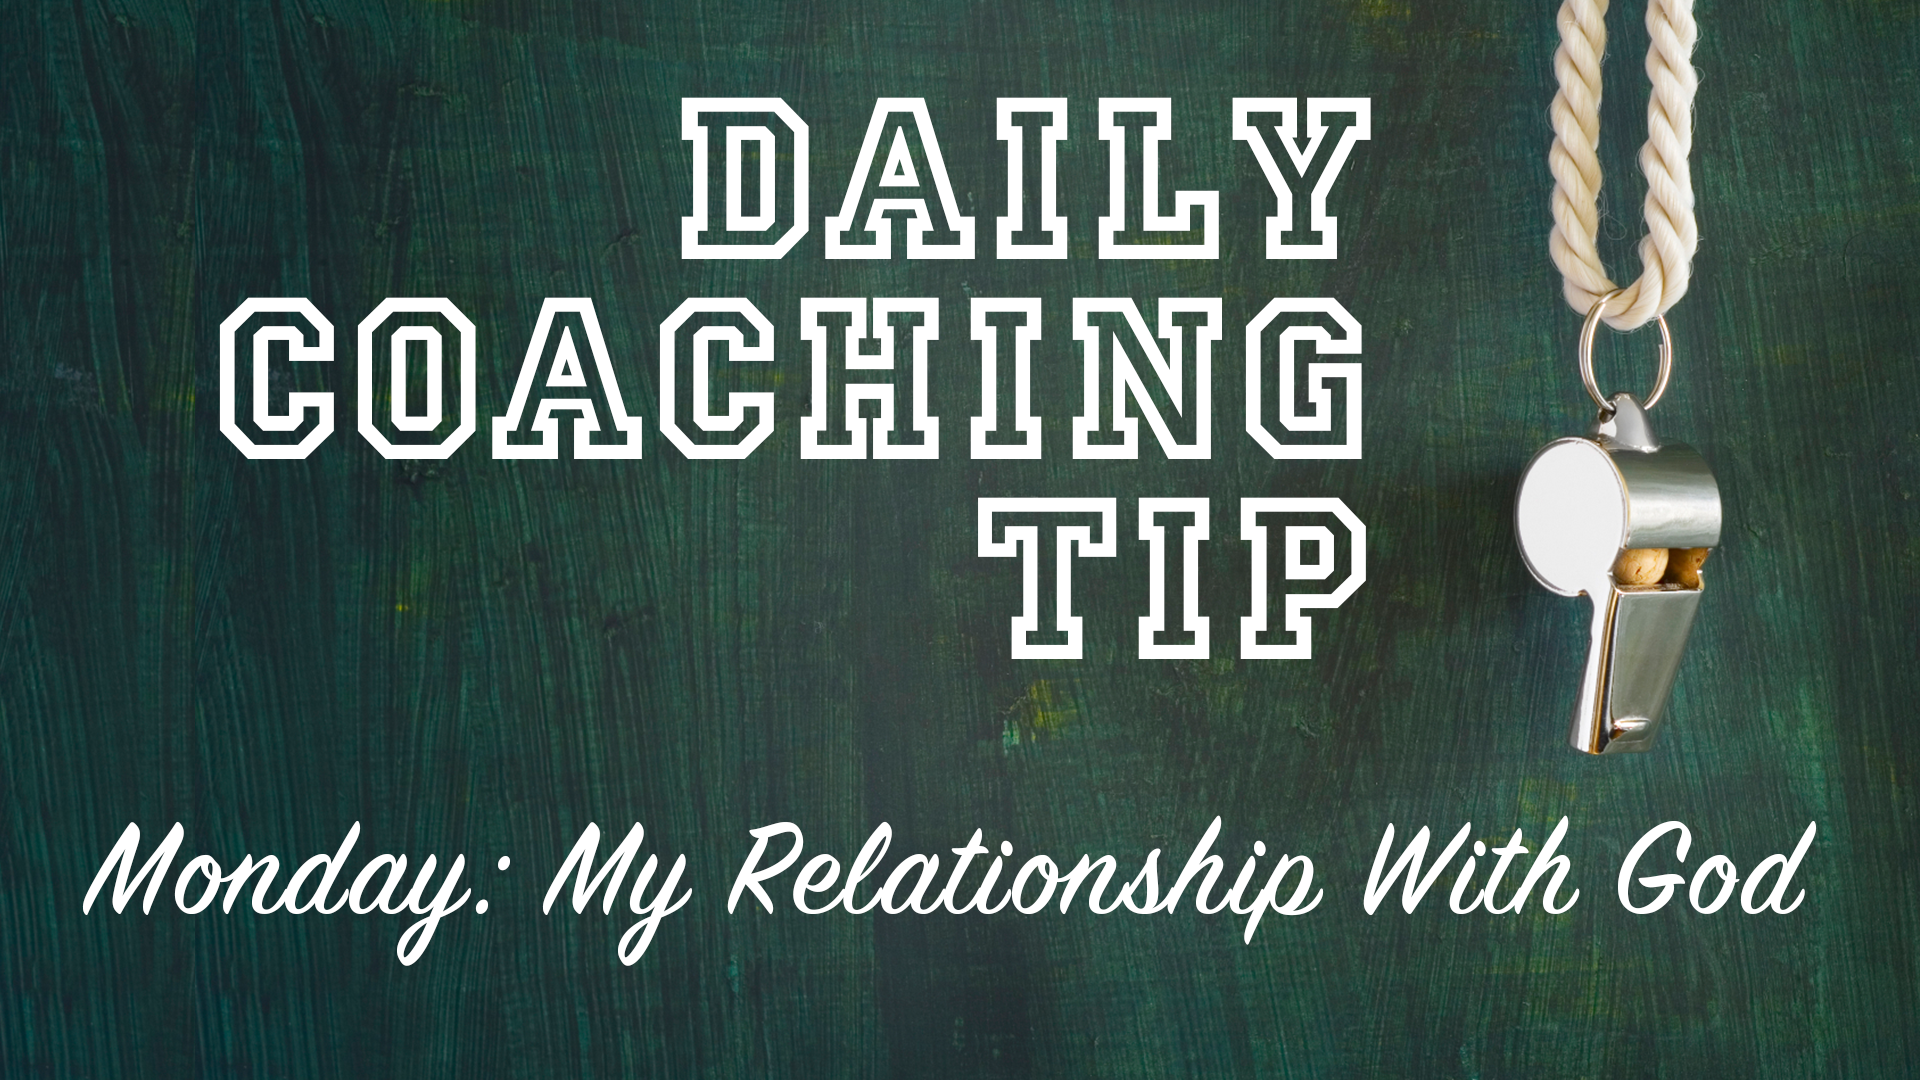 Daily Coaching Tip, Monday, July 11, 2016